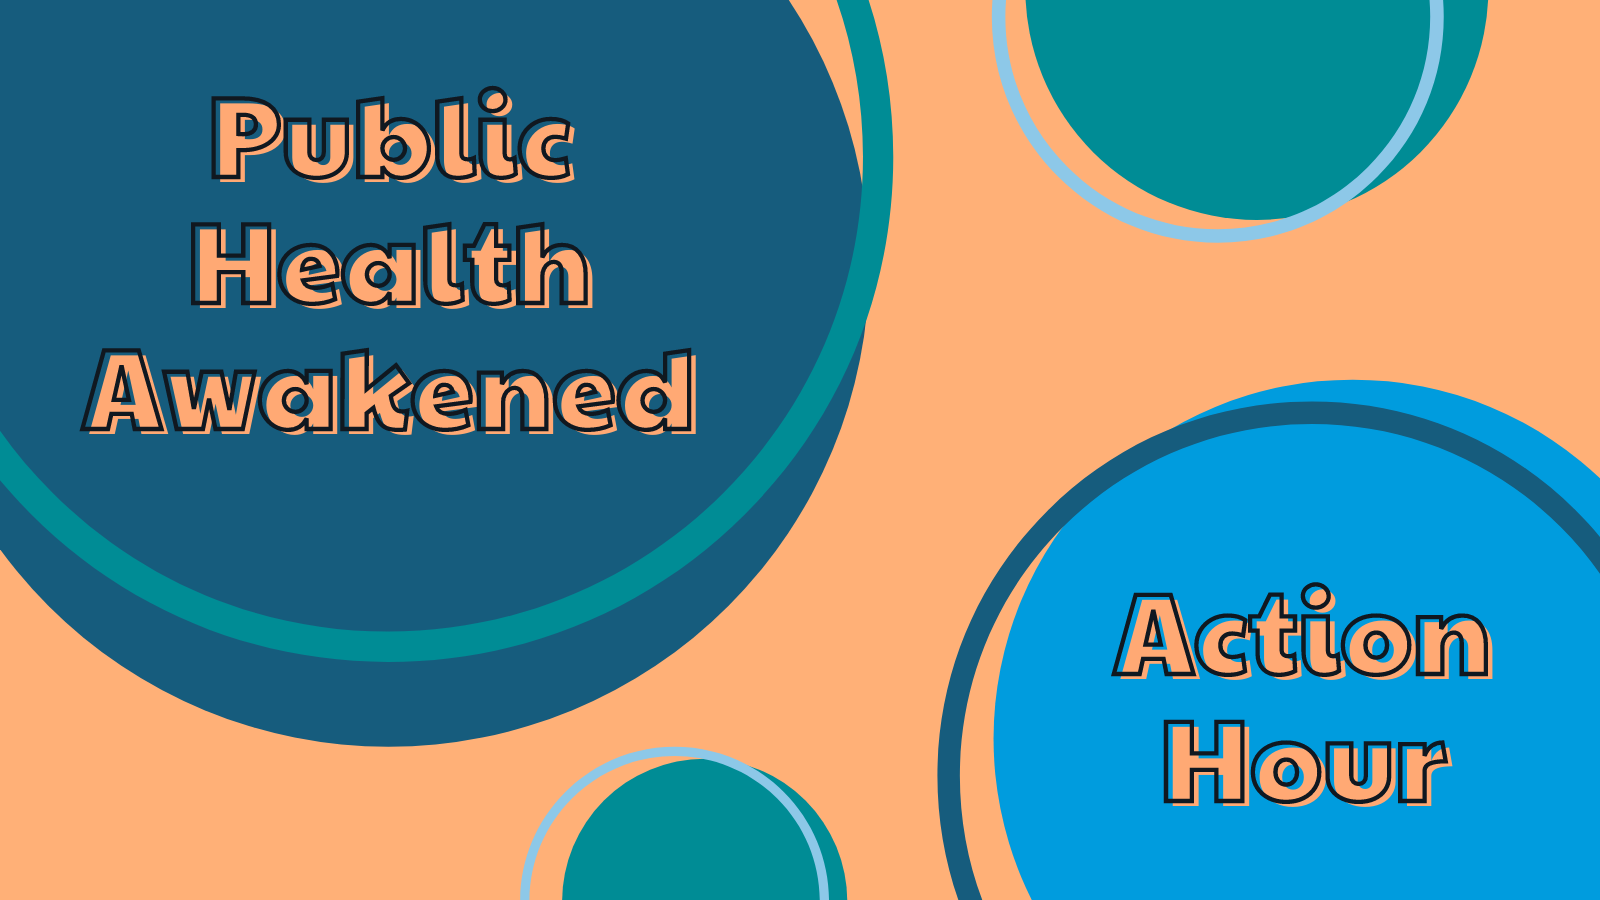 """Decorative image with orange background and blue circles. Overlaid text reads """"Public Health Awakened Action Hour."""""""